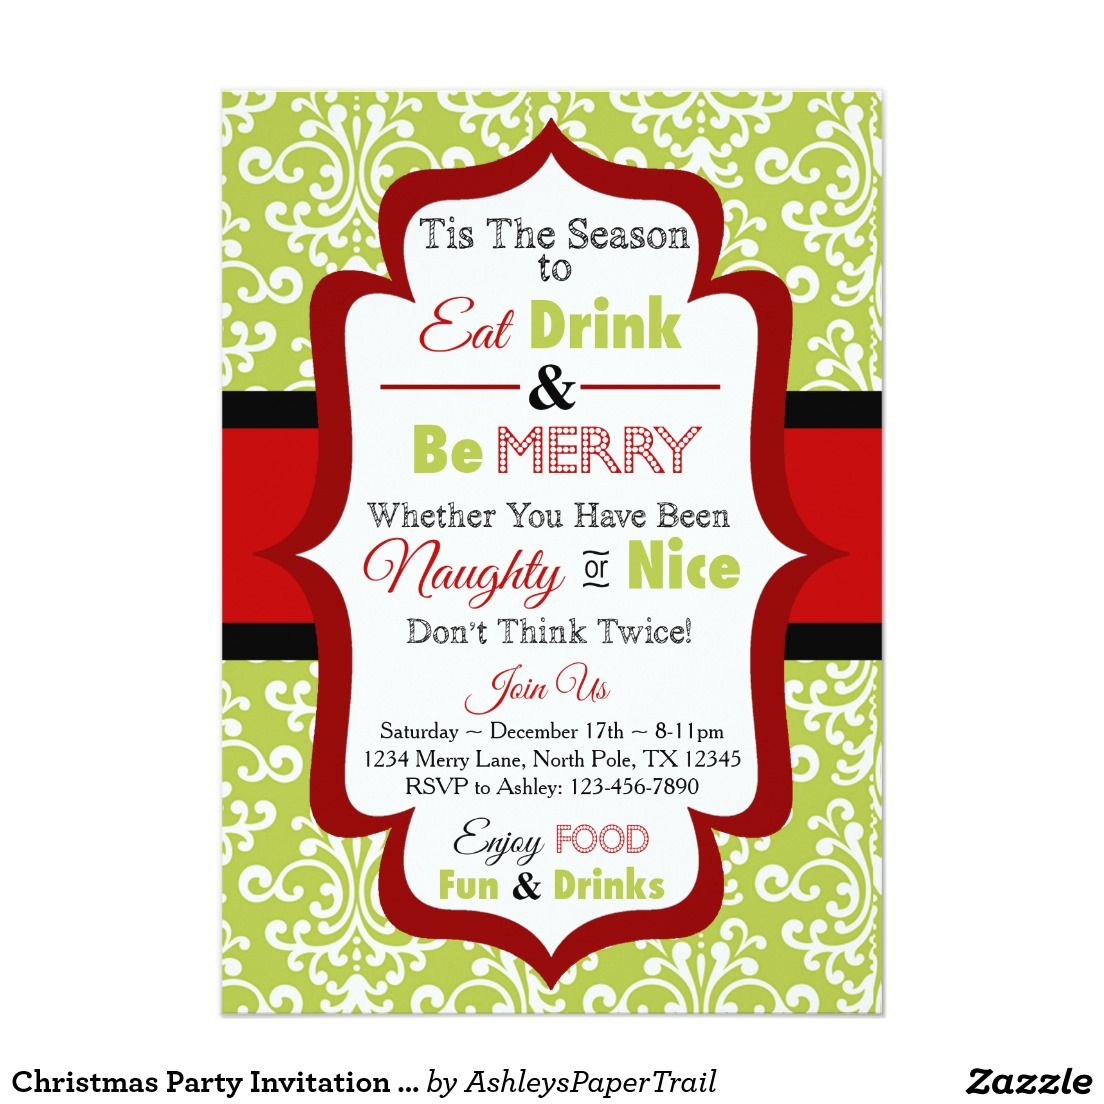 Christmas Party Invitation - Eat Drink & Be Merry | Pinterest